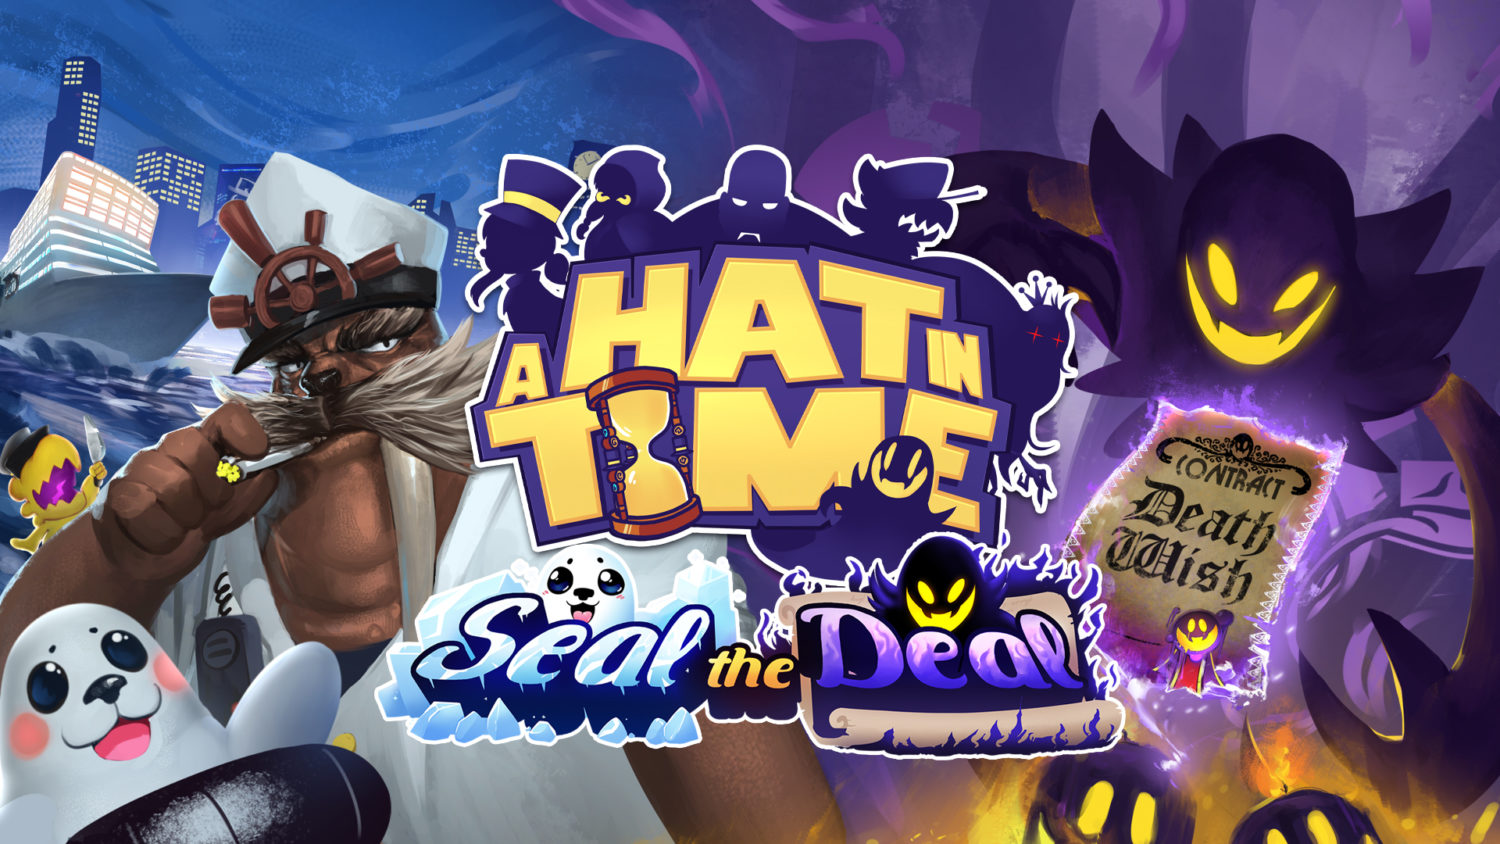 A Hat in time - Seal the Deal - Nintendo Switch eShop